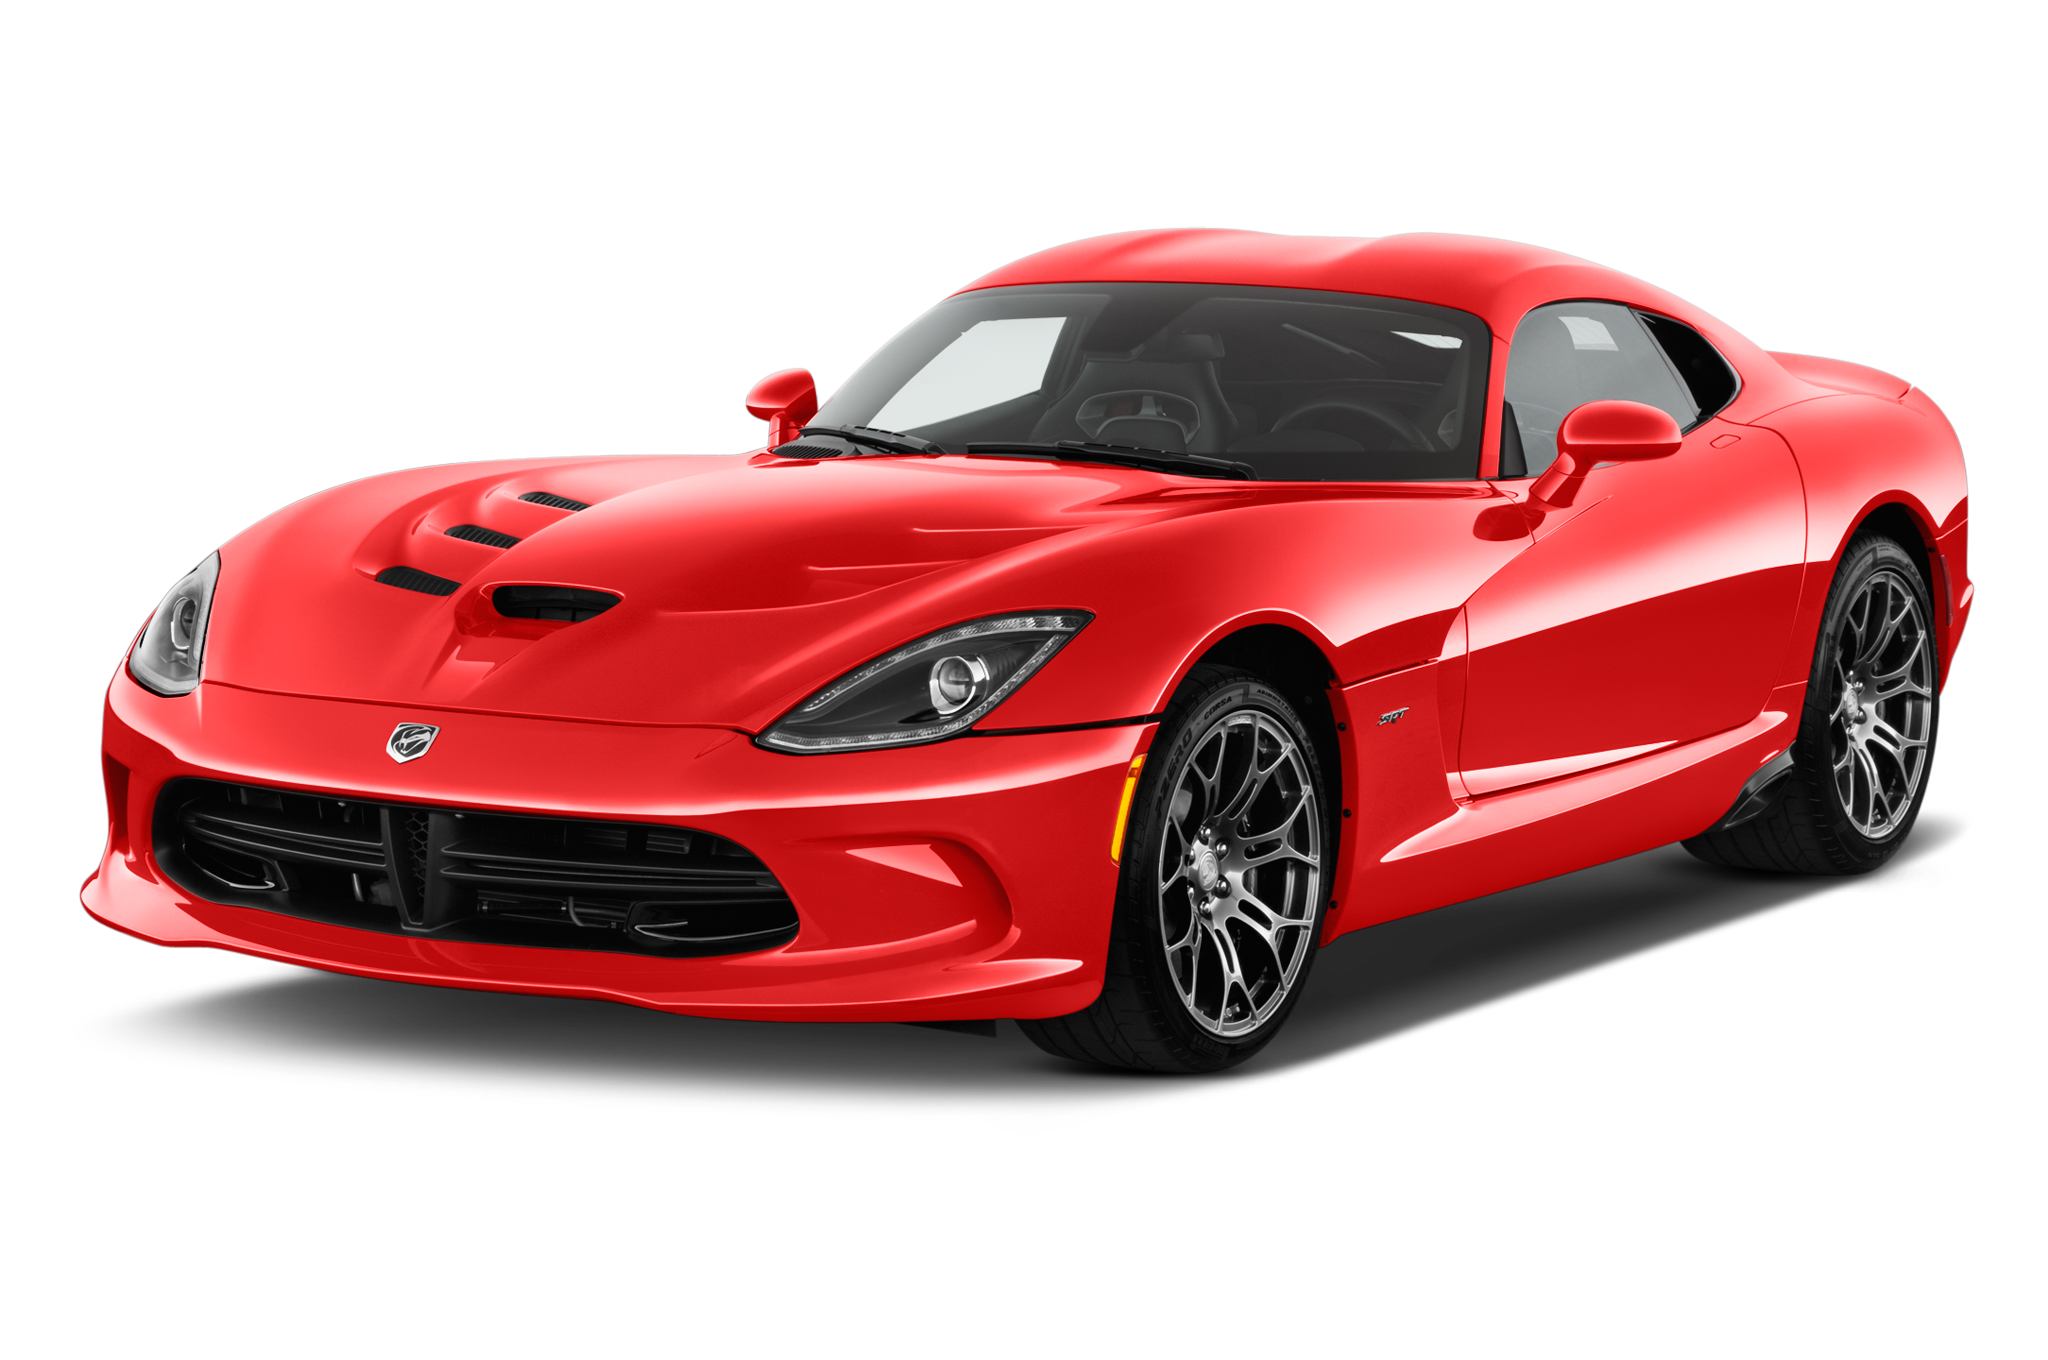 Sport car clipart image black and white download Sports Car Images - BDFjade image black and white download